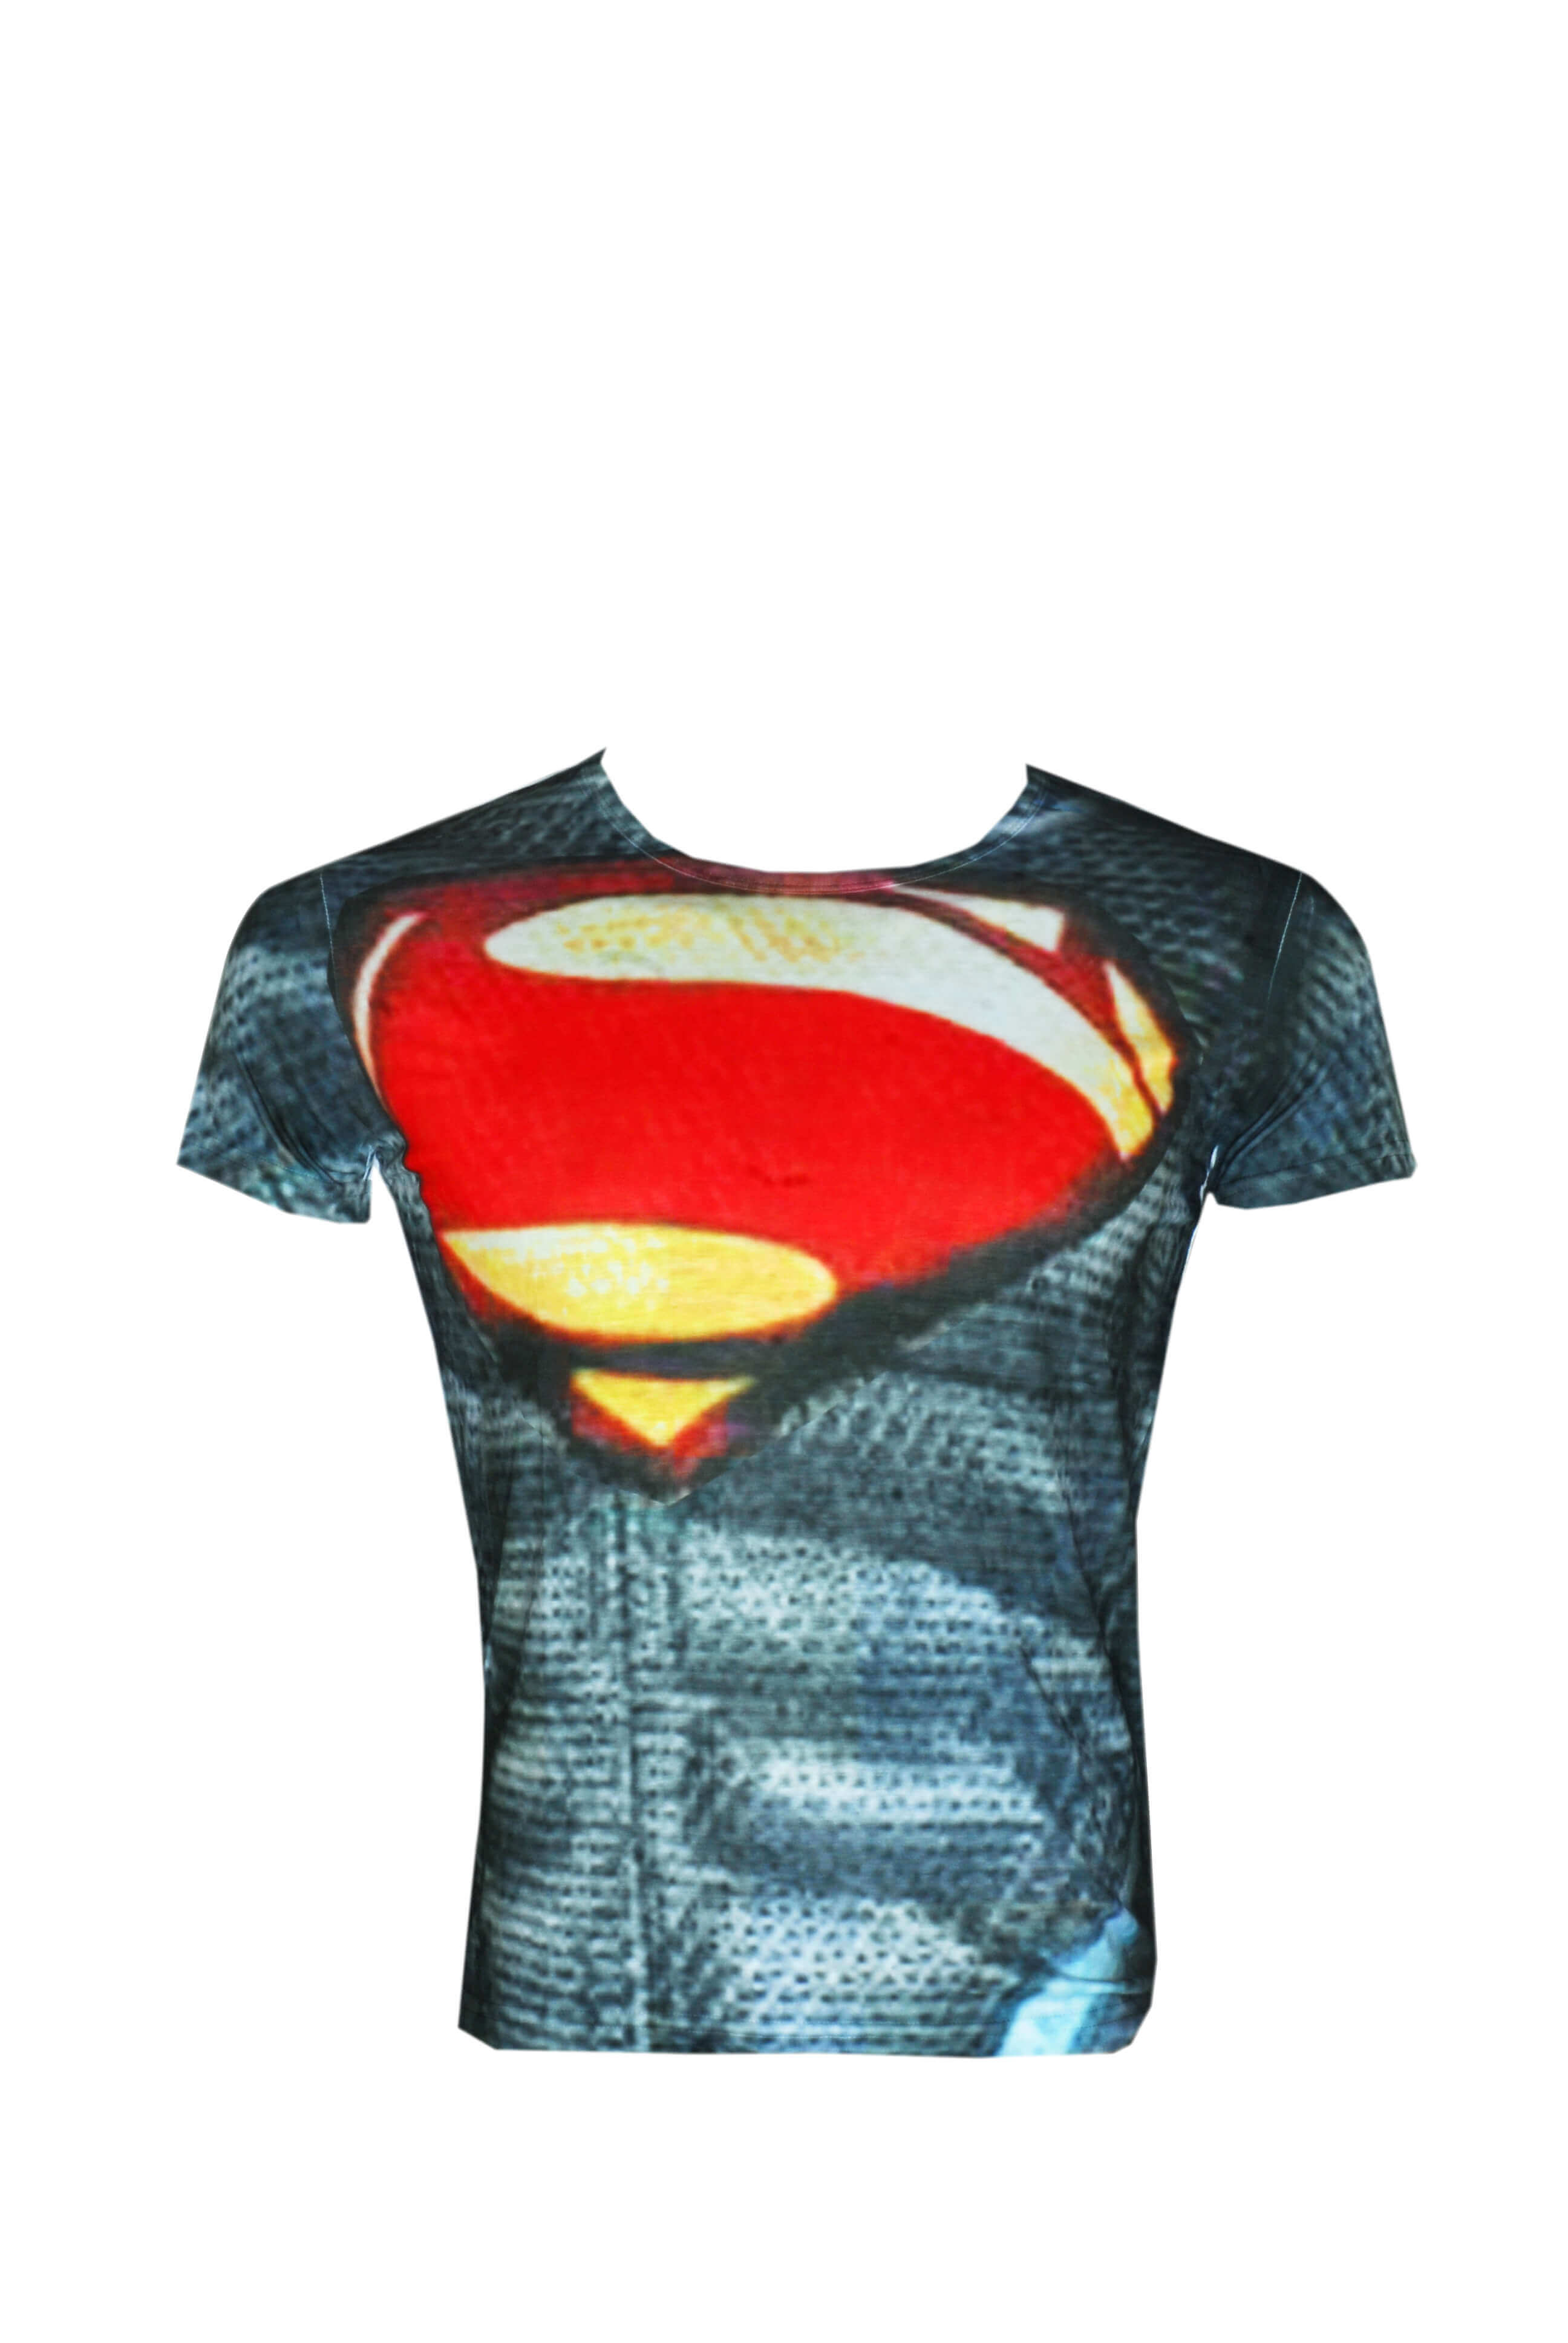 Superman-shirt-swagg